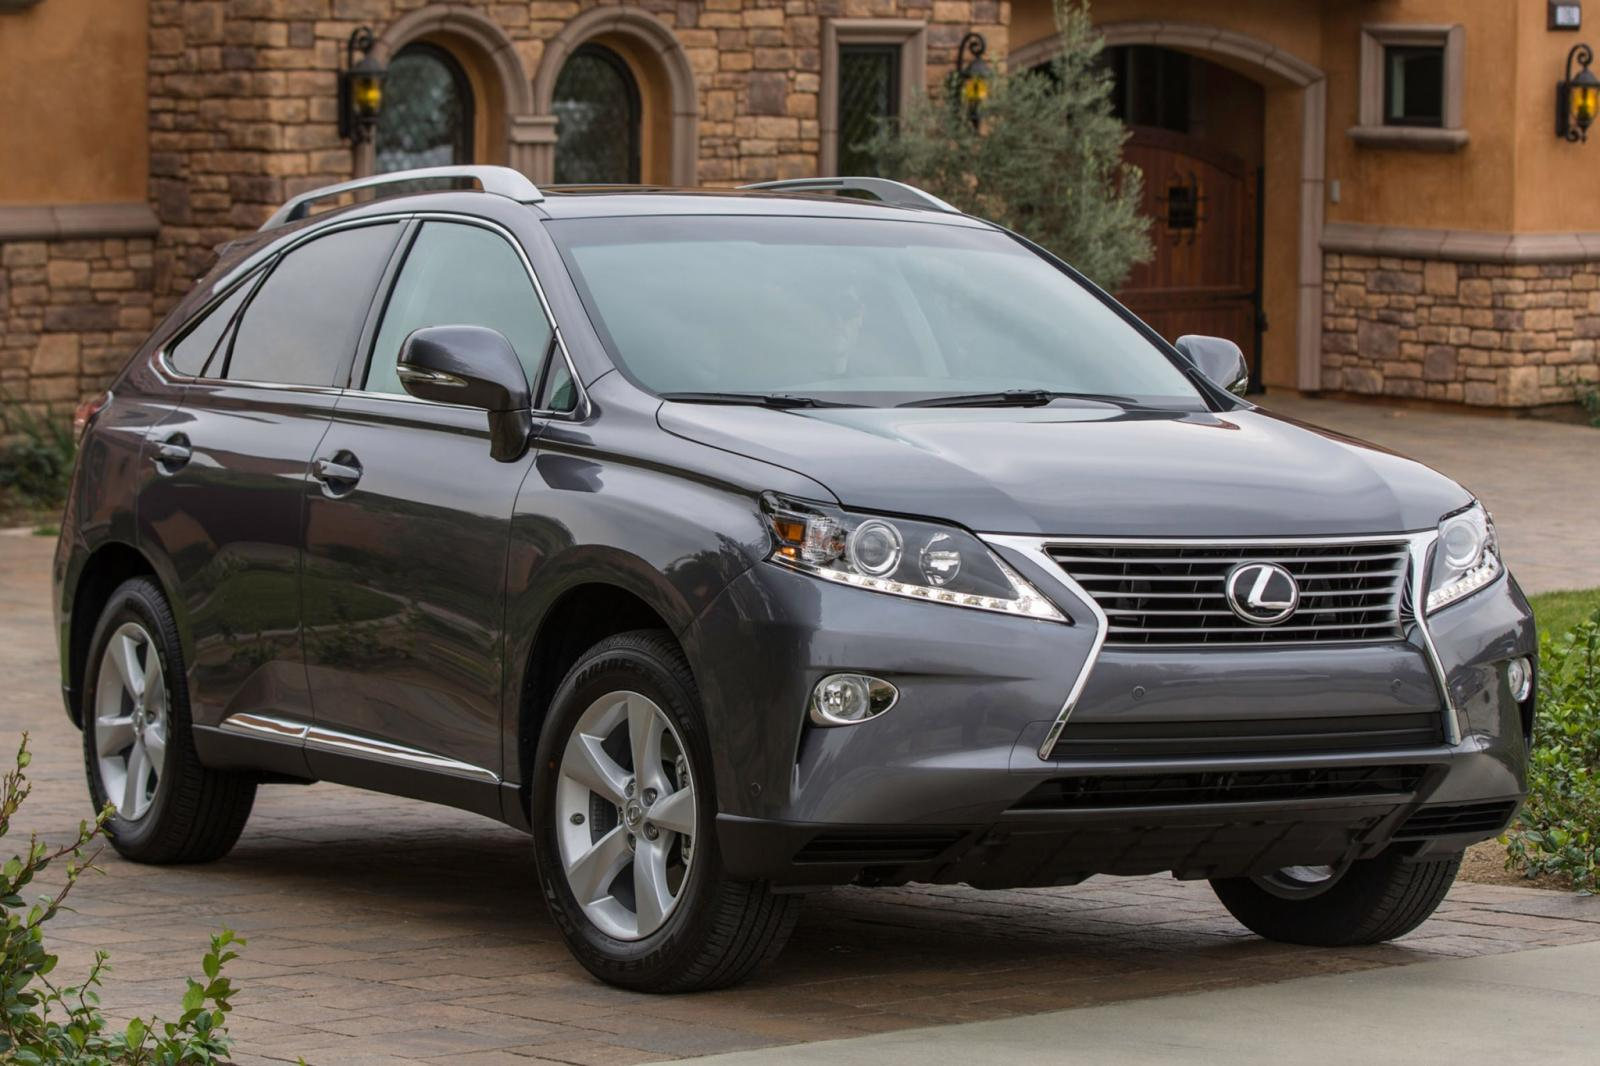 2010 lexus rx 350 interior features